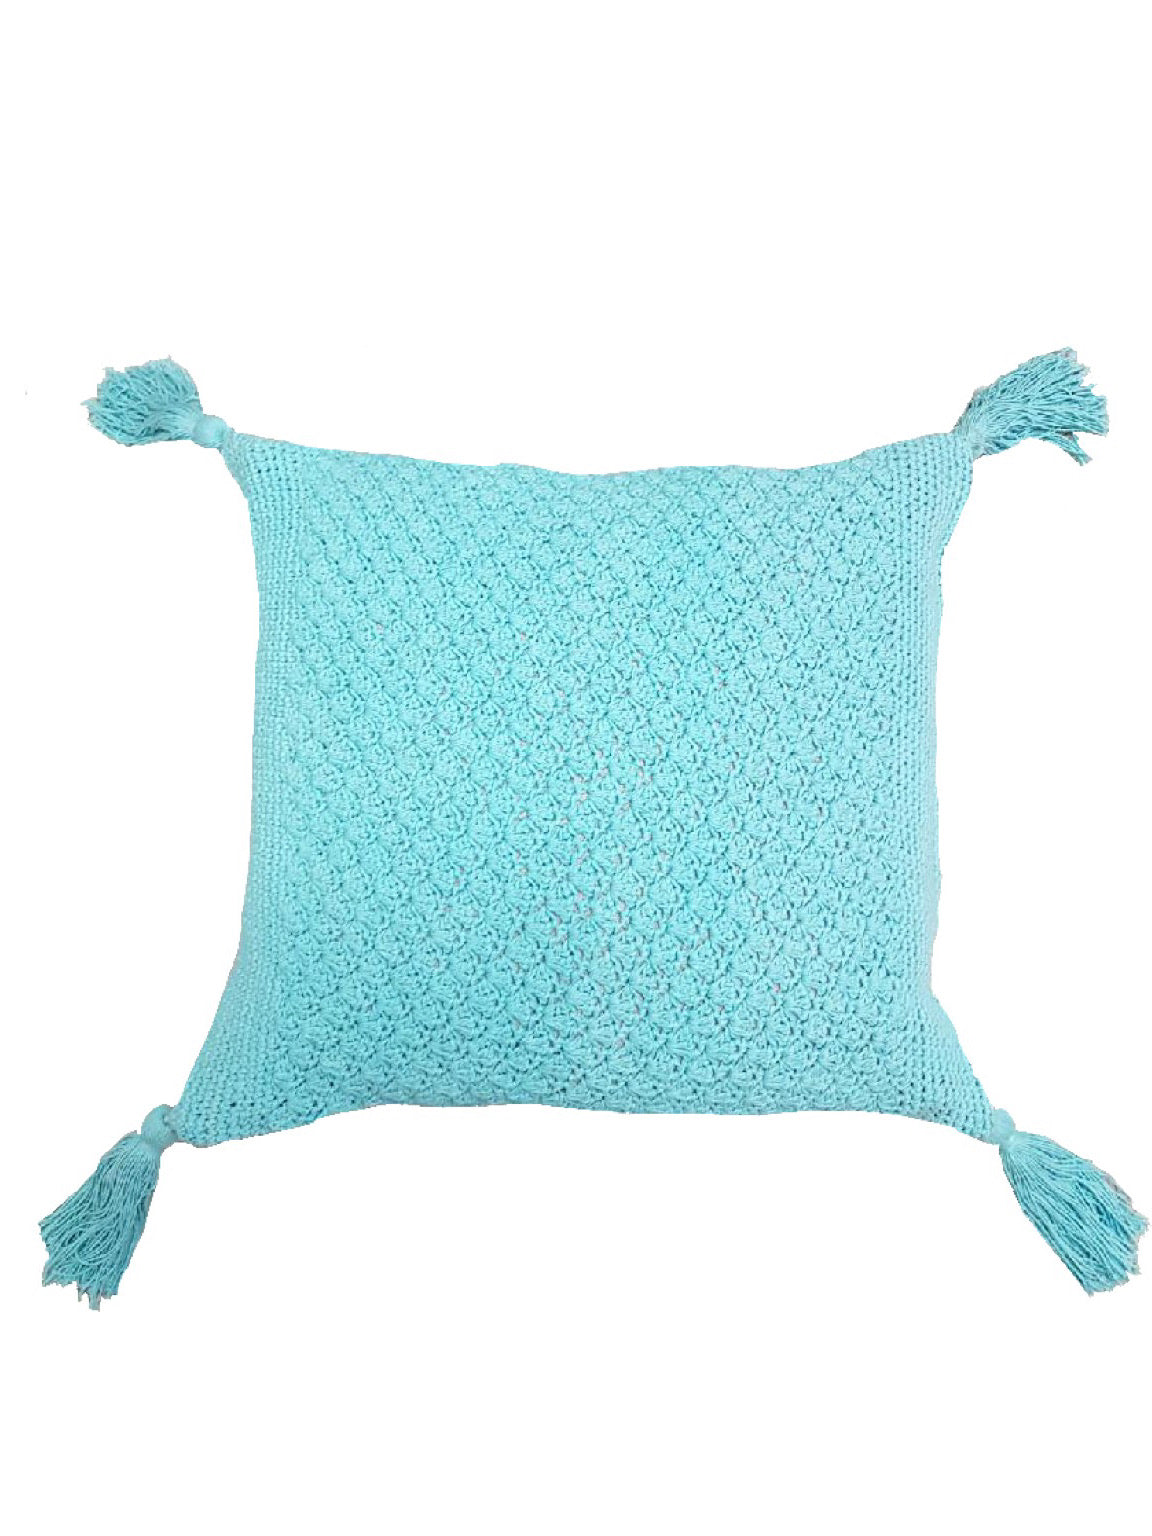 Aqua Sea of Sanur - Cushion - Global Goddess Homewares